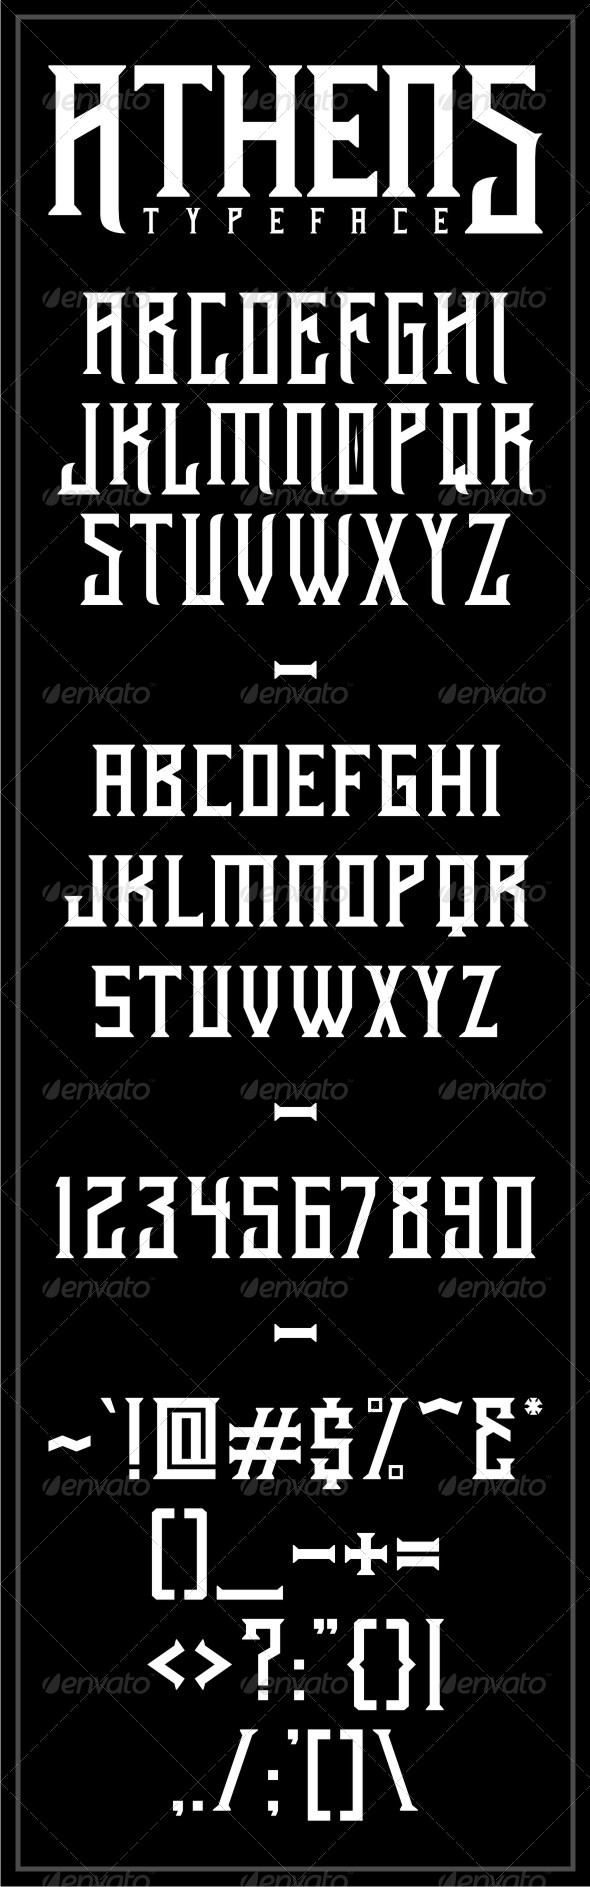 GraphicRiver Athens Typeface 6165635